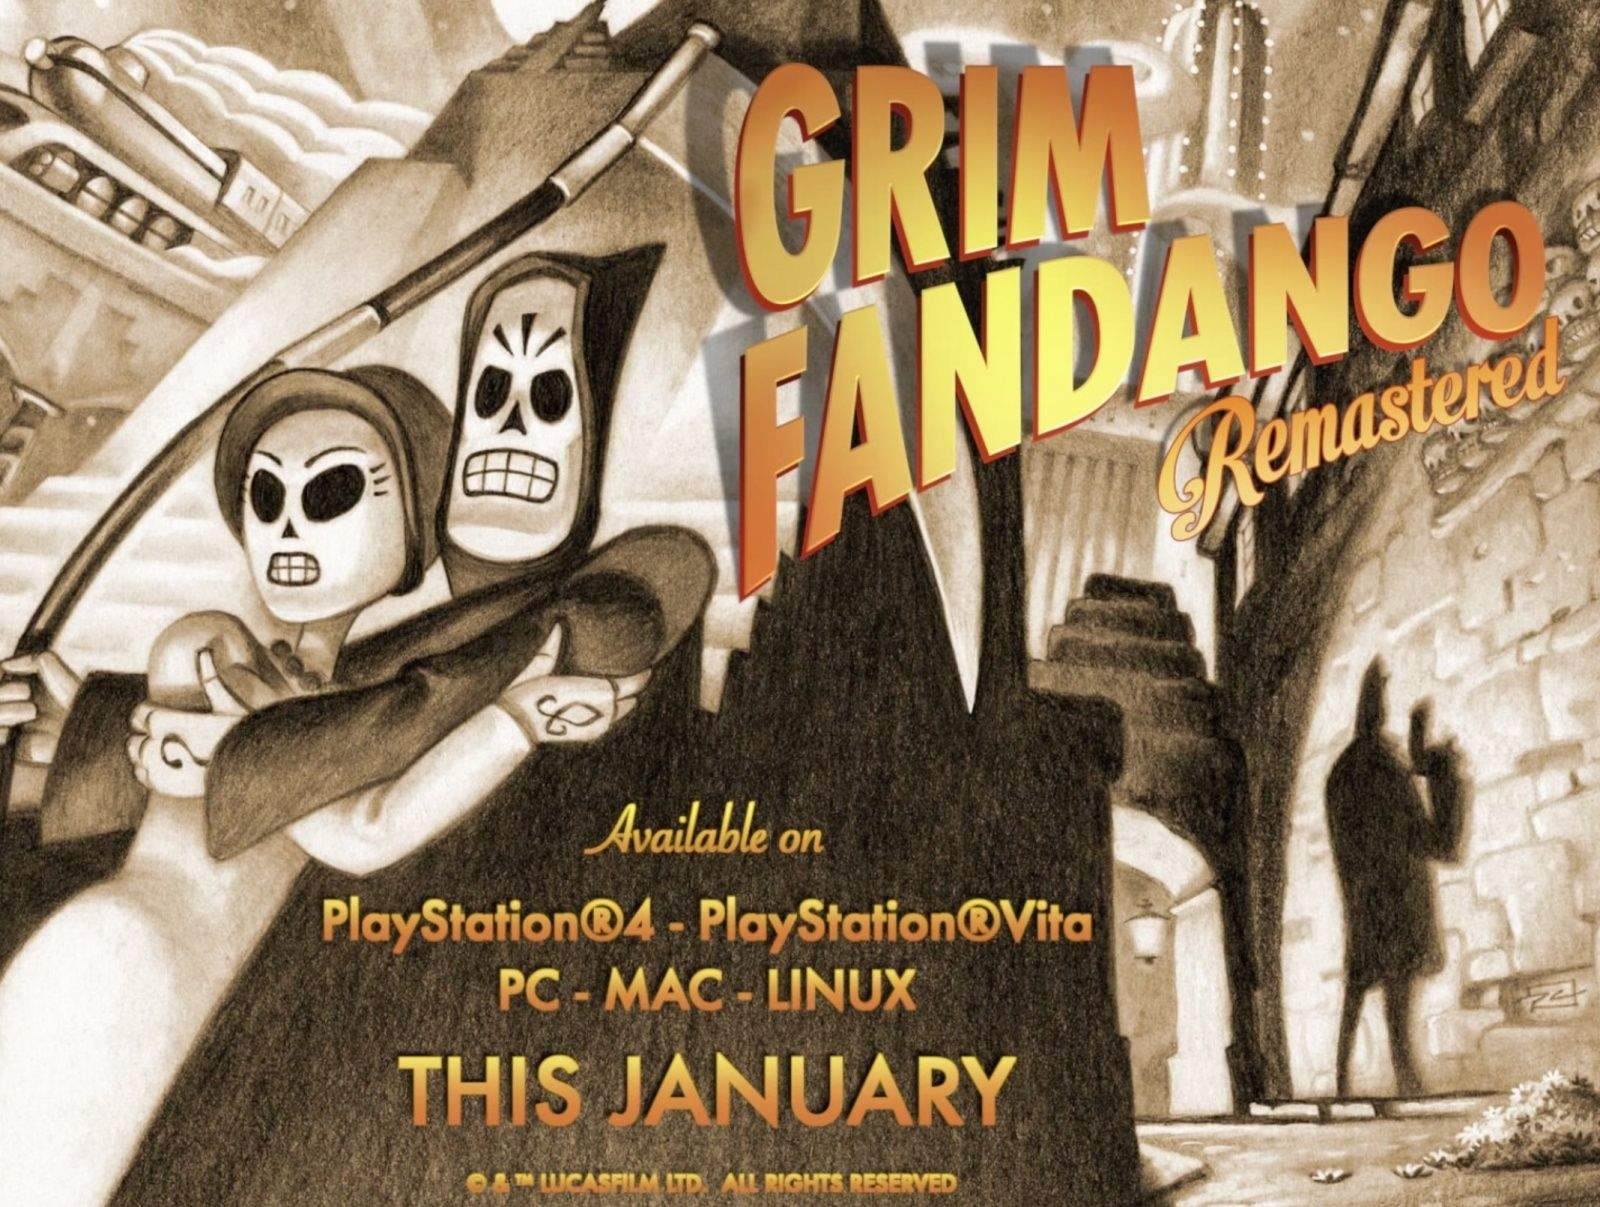 Now we can all play this classic adventure game on our Macs. Photo: DoubleFine Productions